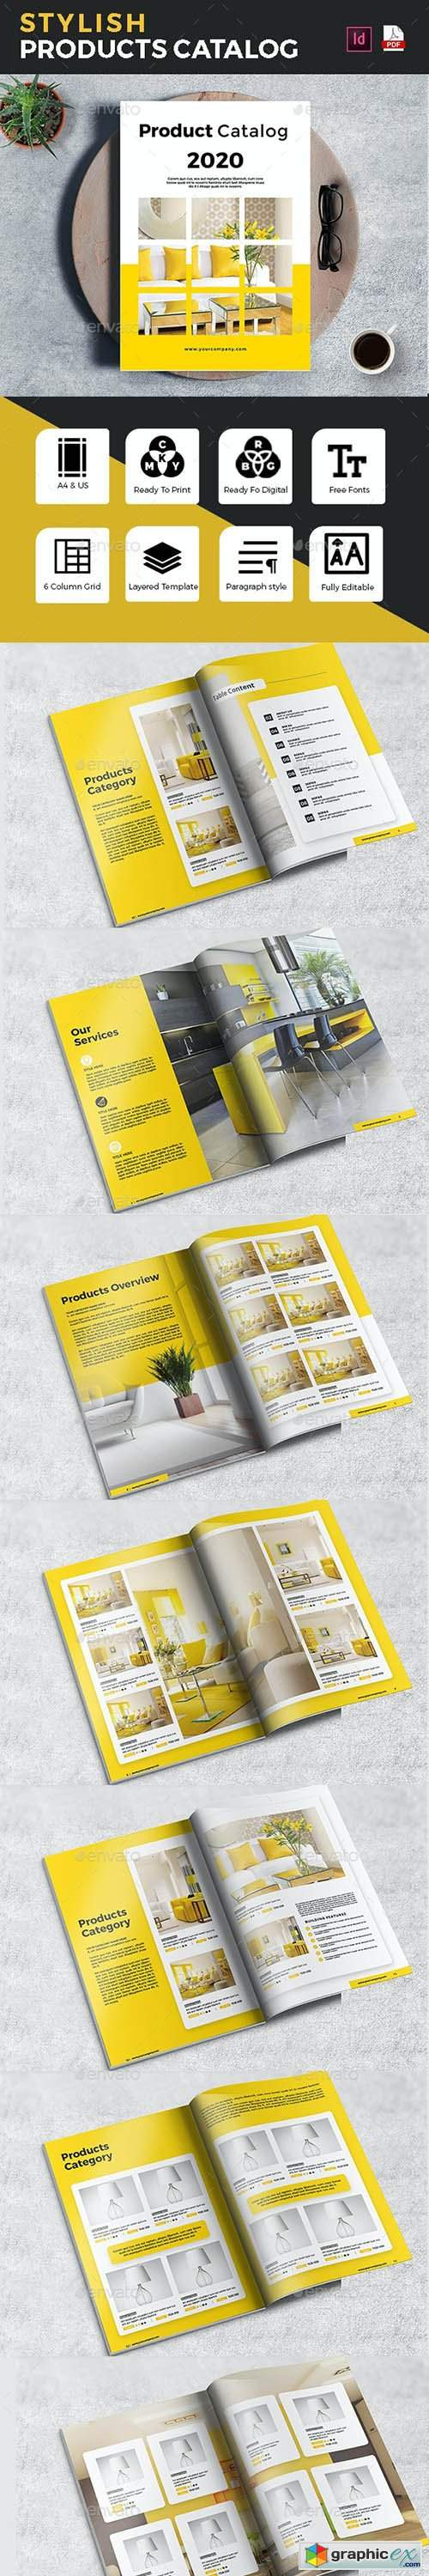 Clean Products Catalog